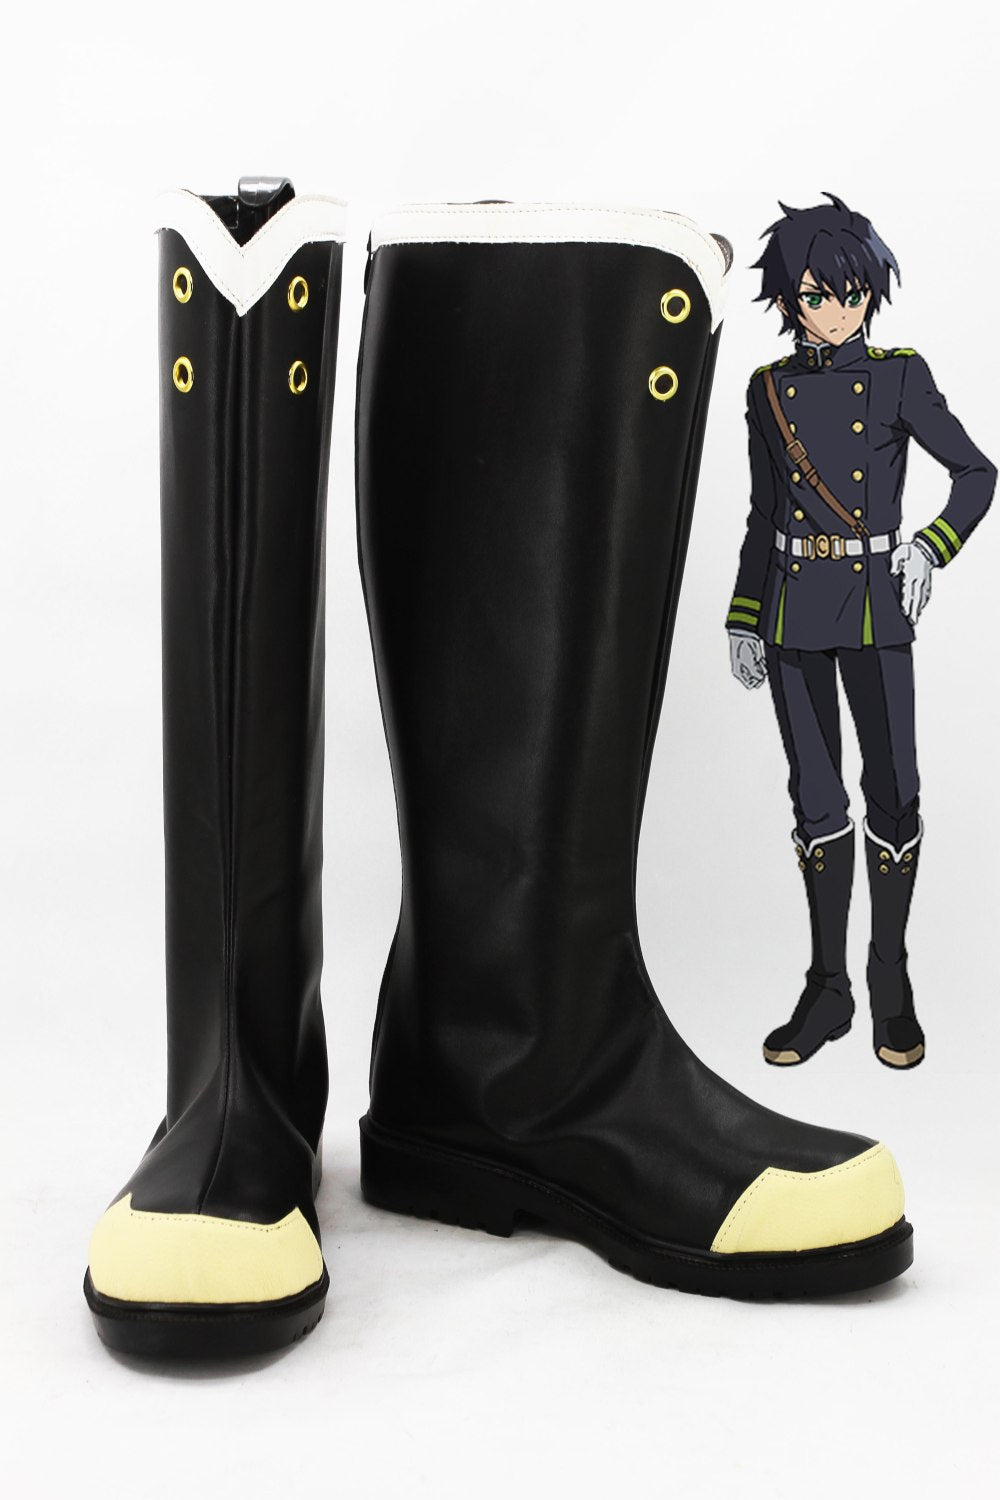 Seraph of the End Yūichirō Hyakuya / Shinoa Hiragi Botte Cosplay Chaussures